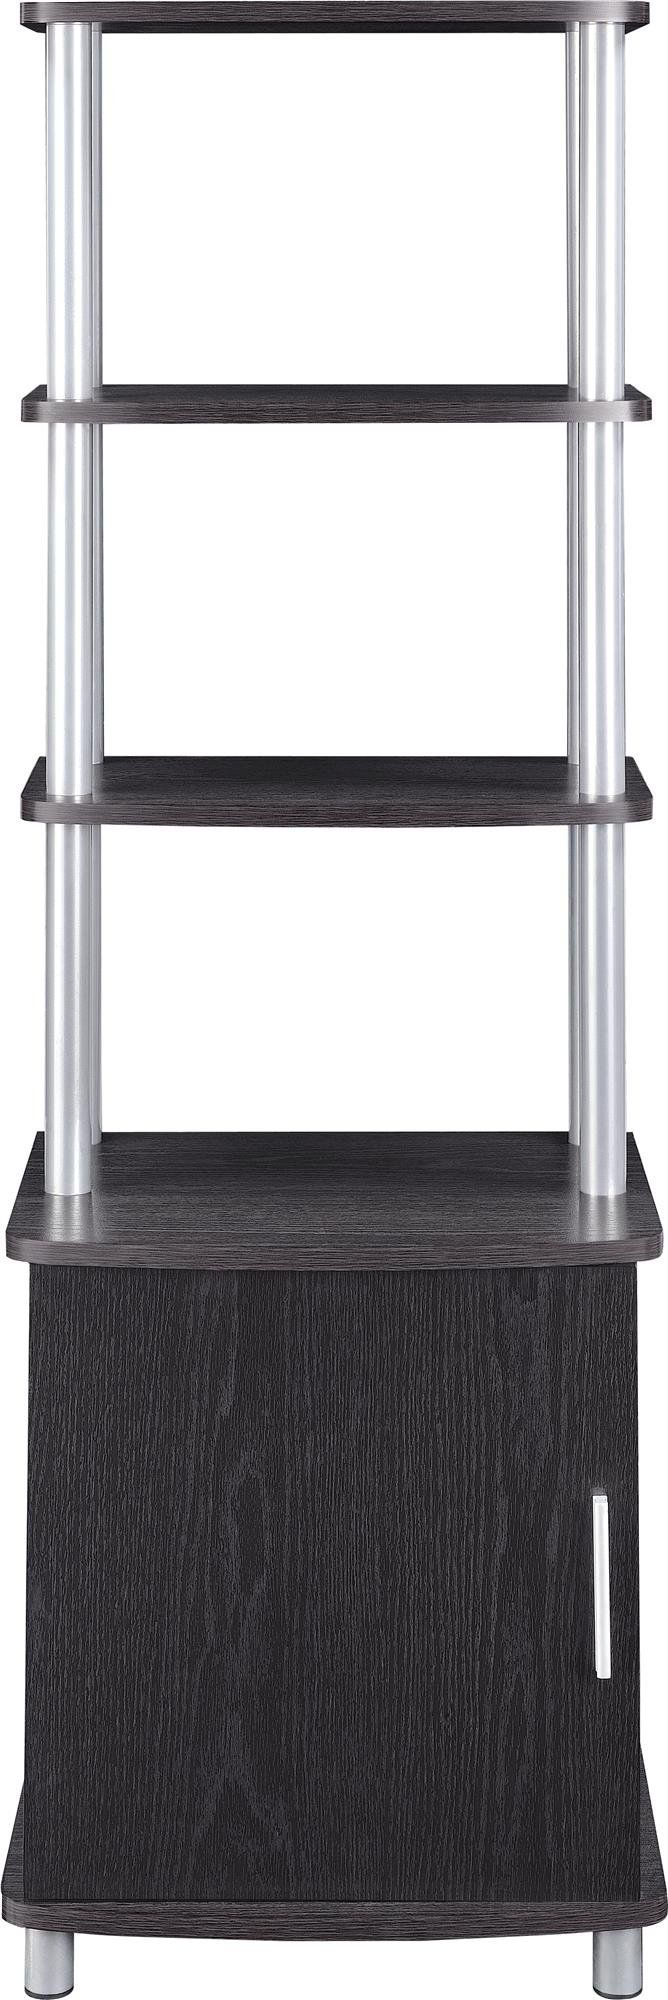 Altra Carson Audio Stand, Espresso. Carson Audio Stand is large enough to hold all your components and accessories. This contemporary Audio Stand can also be used as a storage item in almost any room of your home. Top section has 3 shelves that are perfect for your DVD player, gaming console or to display decorative items. Audio Stand also includes 1 adjustable shelf and 1 fixed shelf behind the door. Store your DVDs, CDs and video games in the concealed storage behind the door.